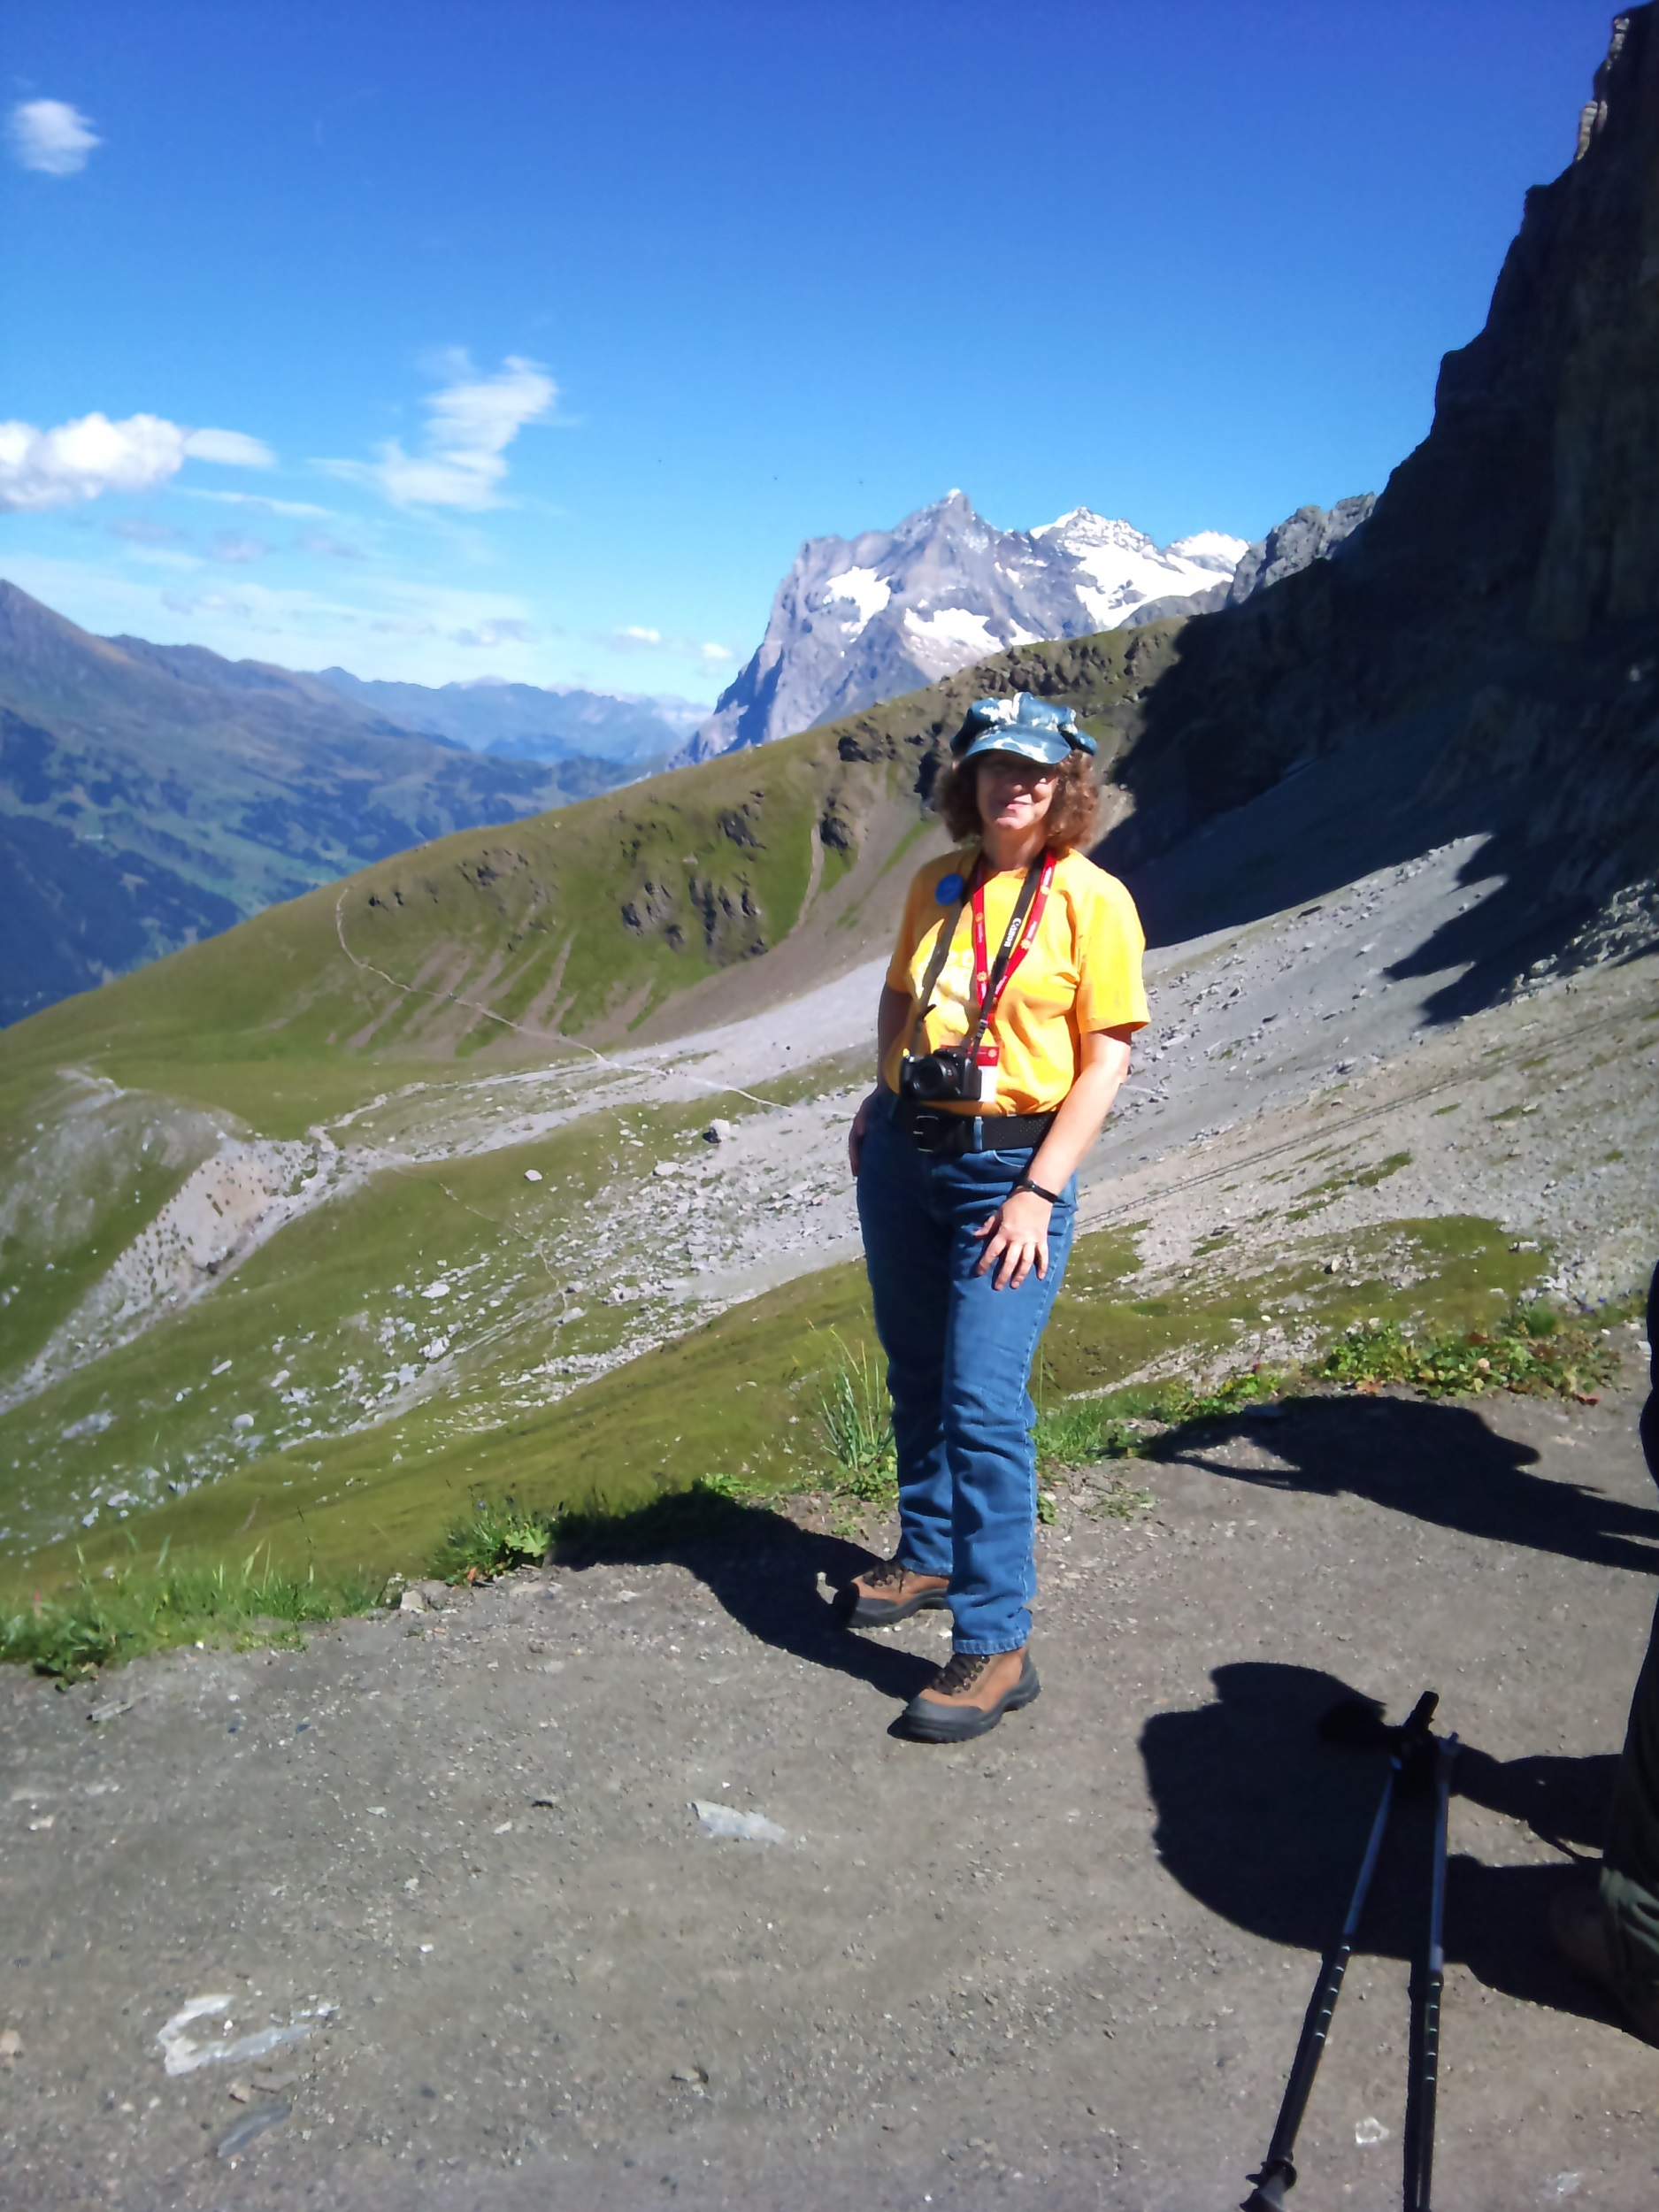 I boarded the train down the mountain braced my feet against the incline to keep in my seat and rode to the Eigergletscher railway station where I ... & Switzerland: Hiking the Eiger Trail